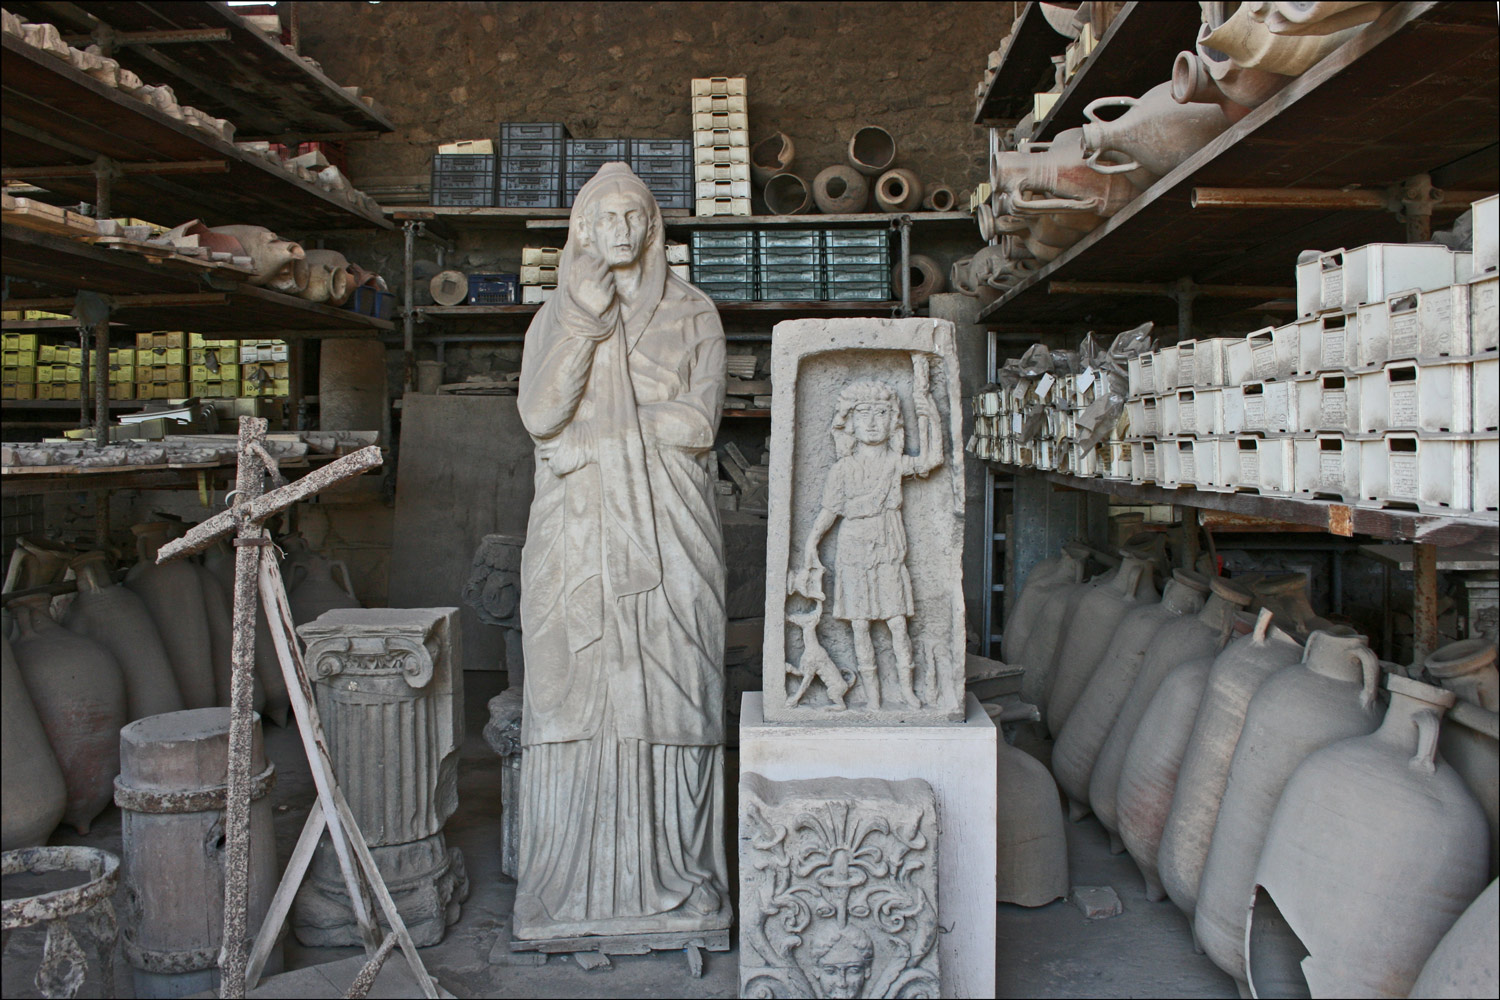 Granary Market with Statues